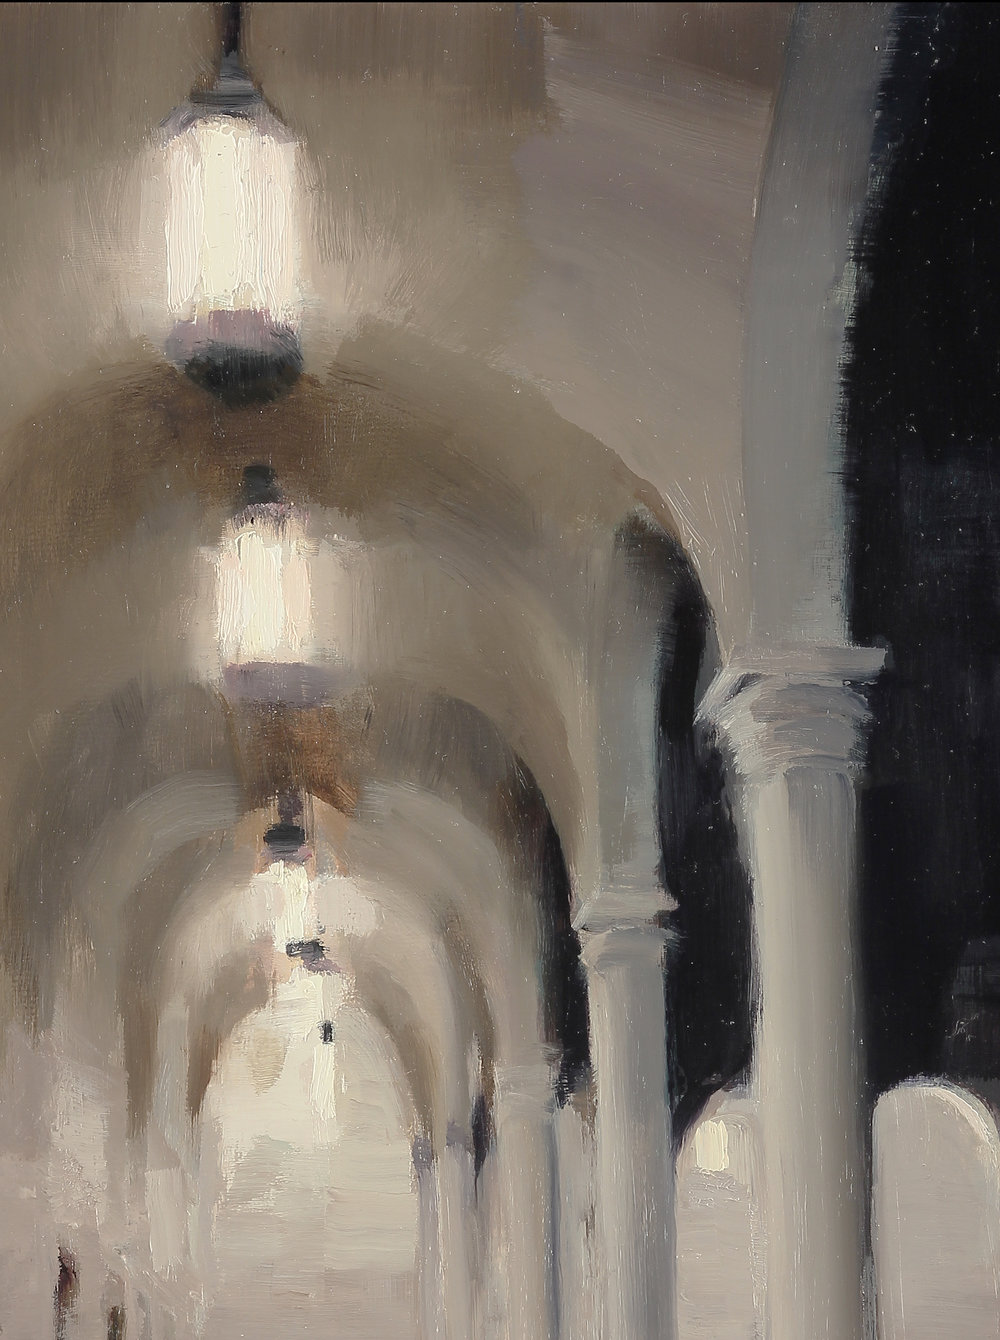 Court of Boston Library (detail), 16 X 12 inches, oil on panel